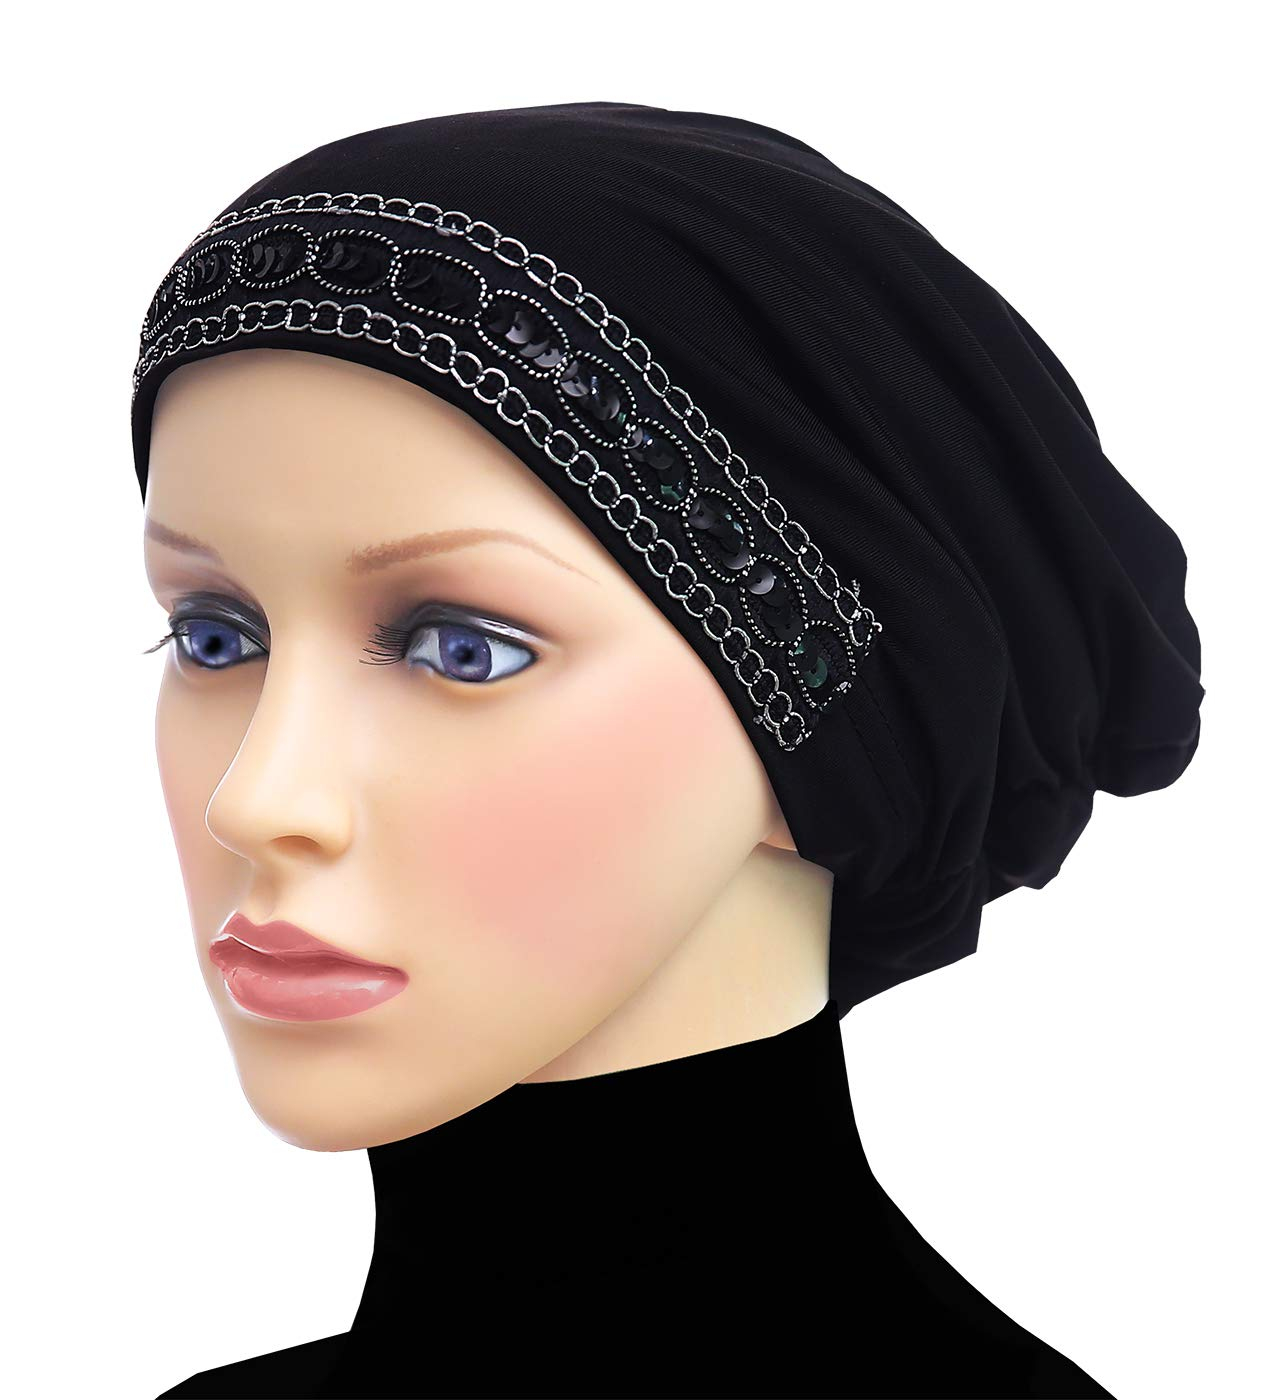 Middle Eastern Mall Luxor Fashion Snood Caps Women Chemo Beanie Hat (Black)